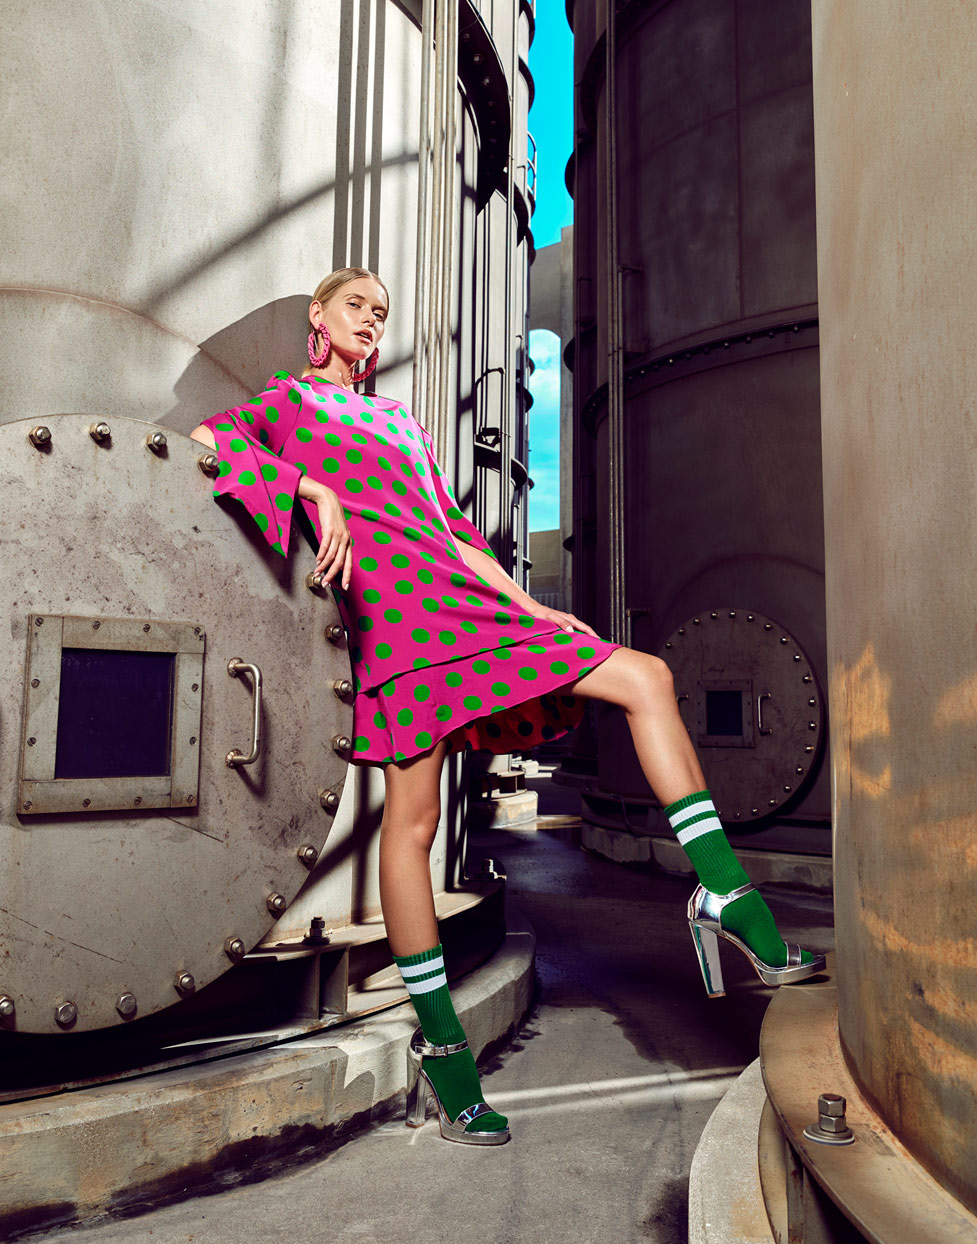 Woman with pink dress with green polka dots and high green socks leaning against metal industrial storage tank - Mark DeLong: Fashion Gallery